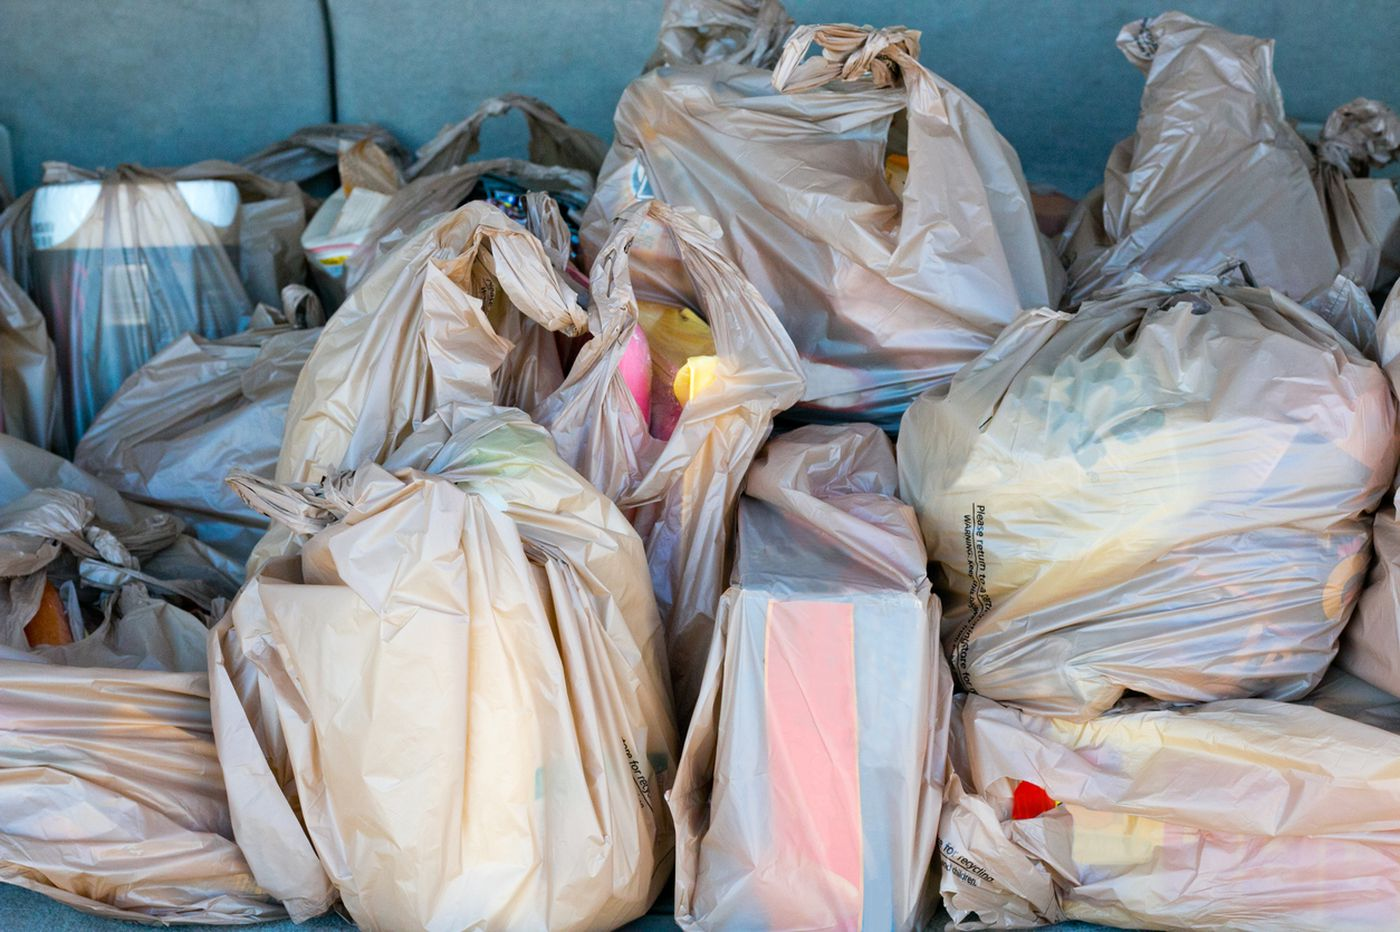 N.J. poised to impose 5-cent fee on plastic bags, so why aren't environmentalists happy?